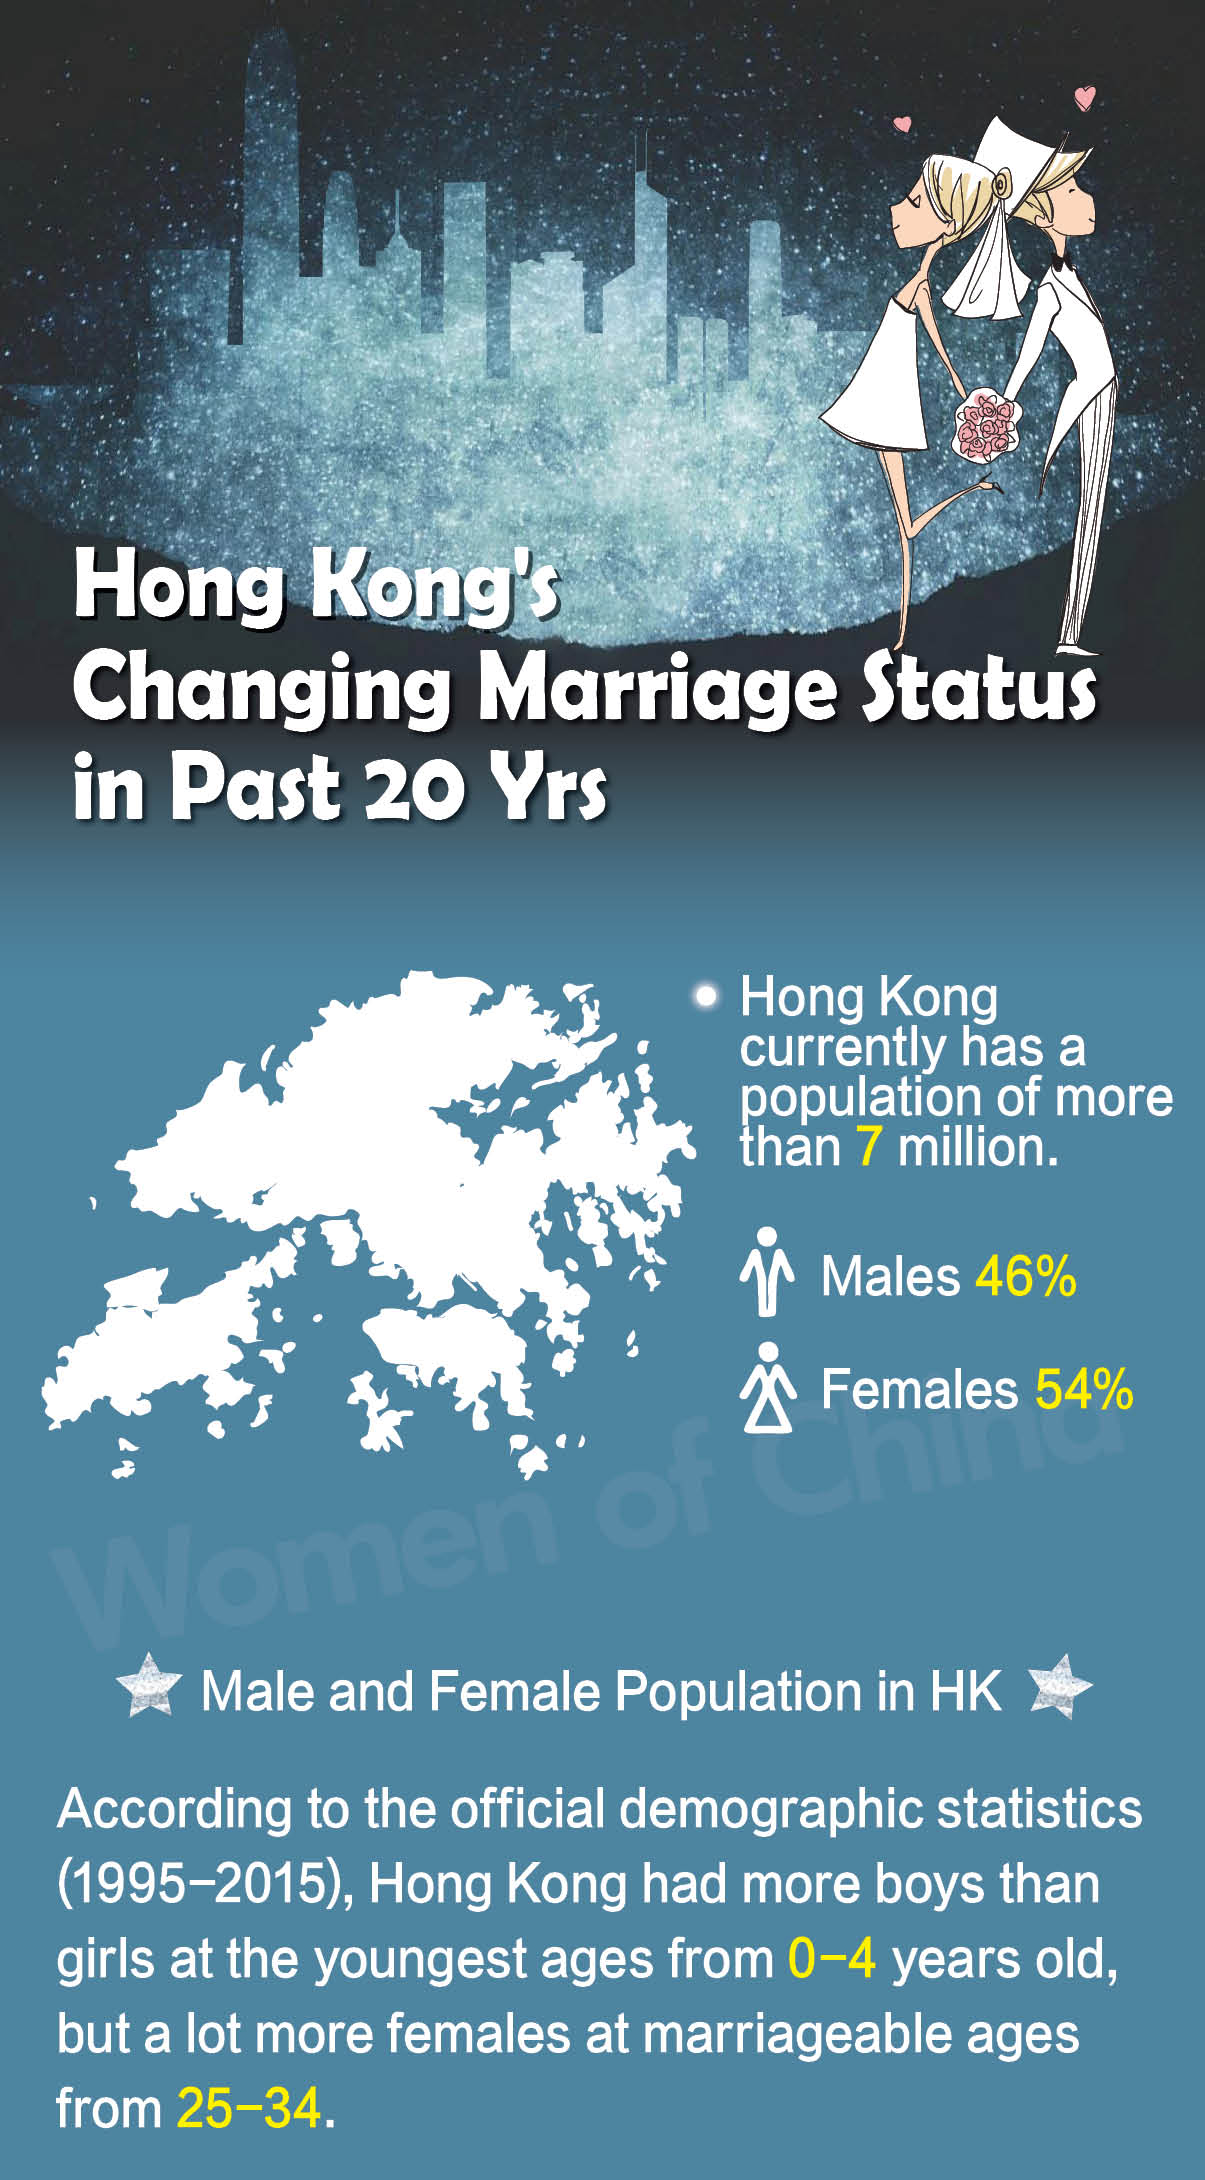 HK's Changing Marriage Status in Past 20 Yrs